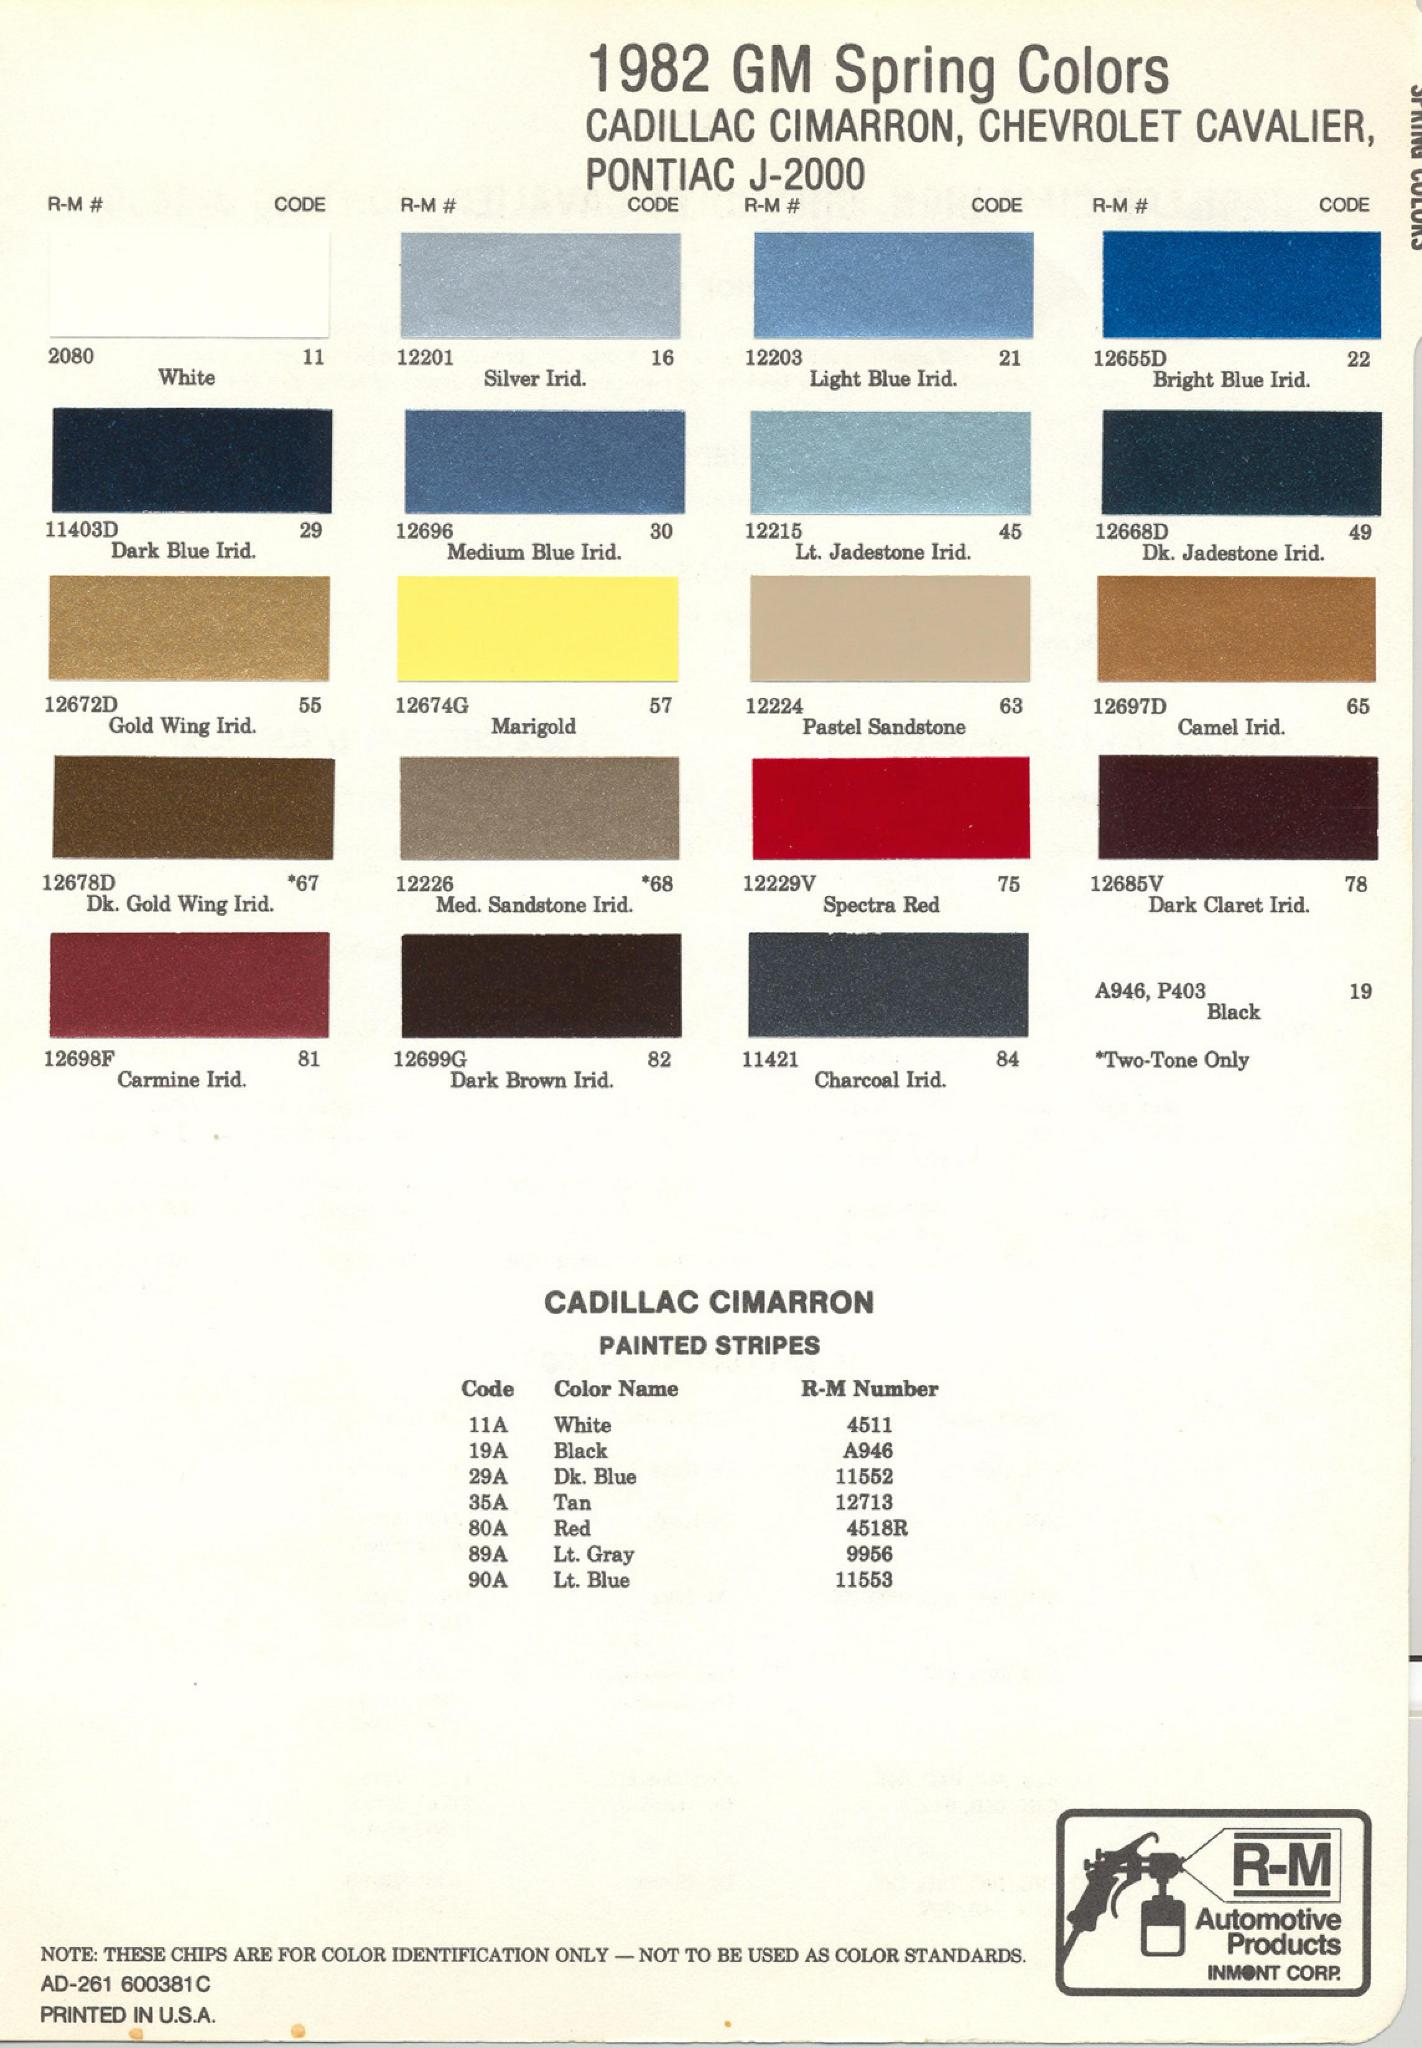 Colors and Color Codes used on General Motors in 1982